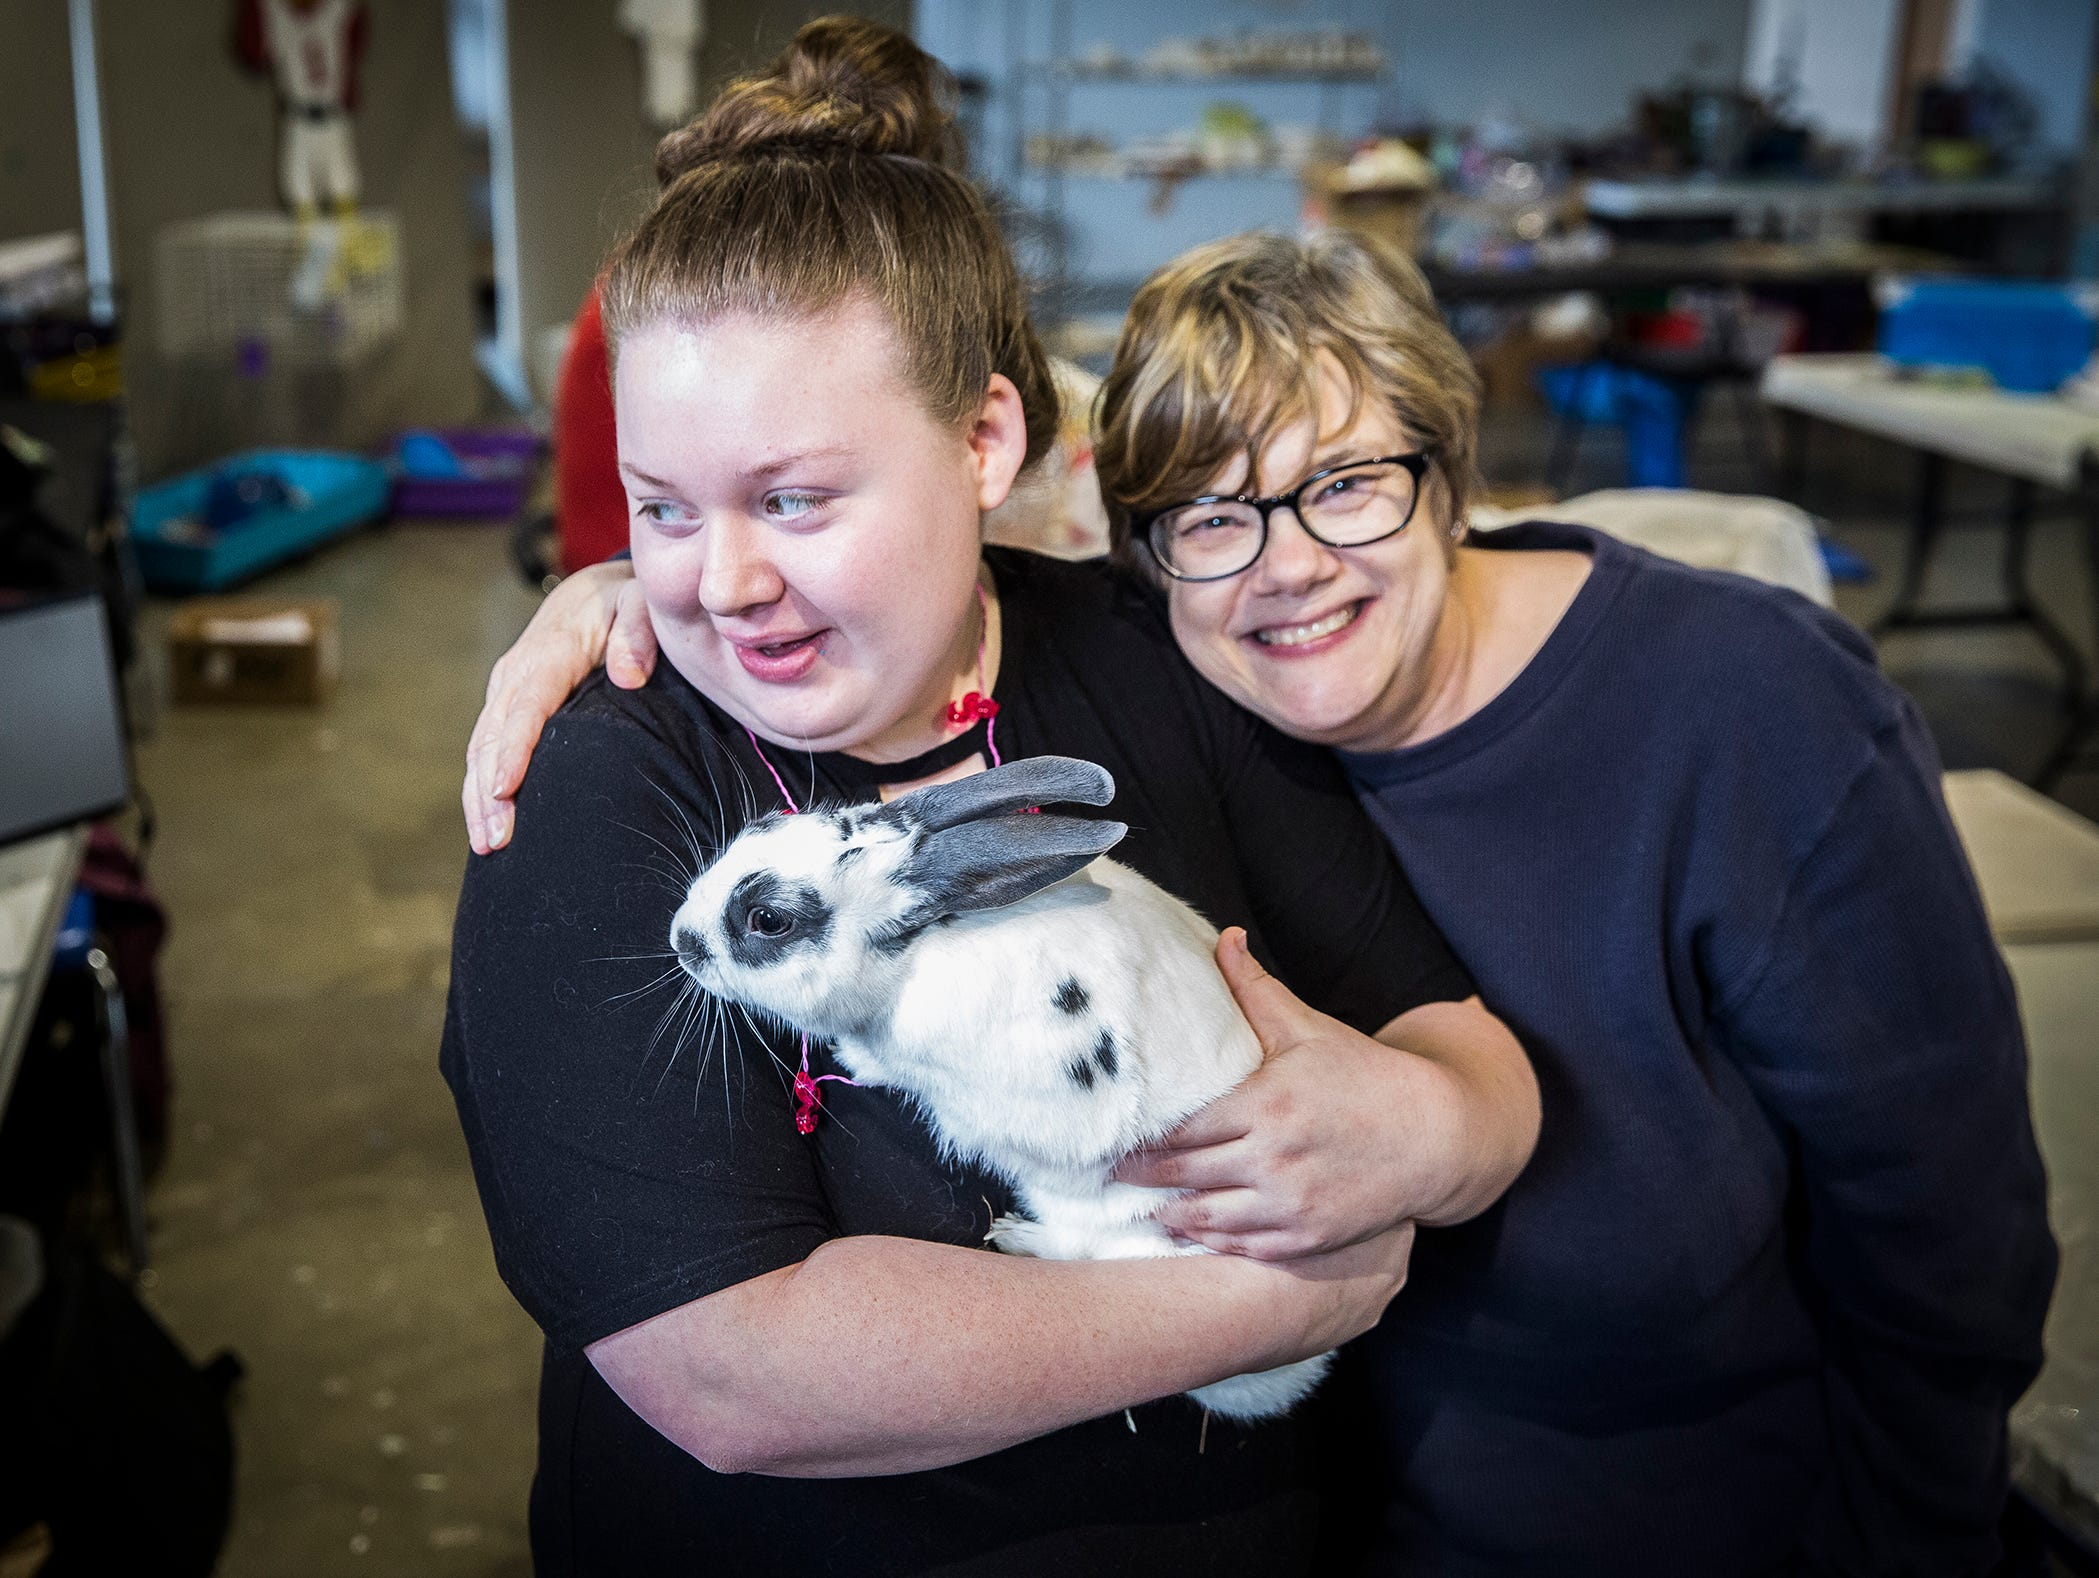 """Beyond I Can workers visit with one of the group's pet rabbits """"Spot"""" at the program's new location in Madjax."""